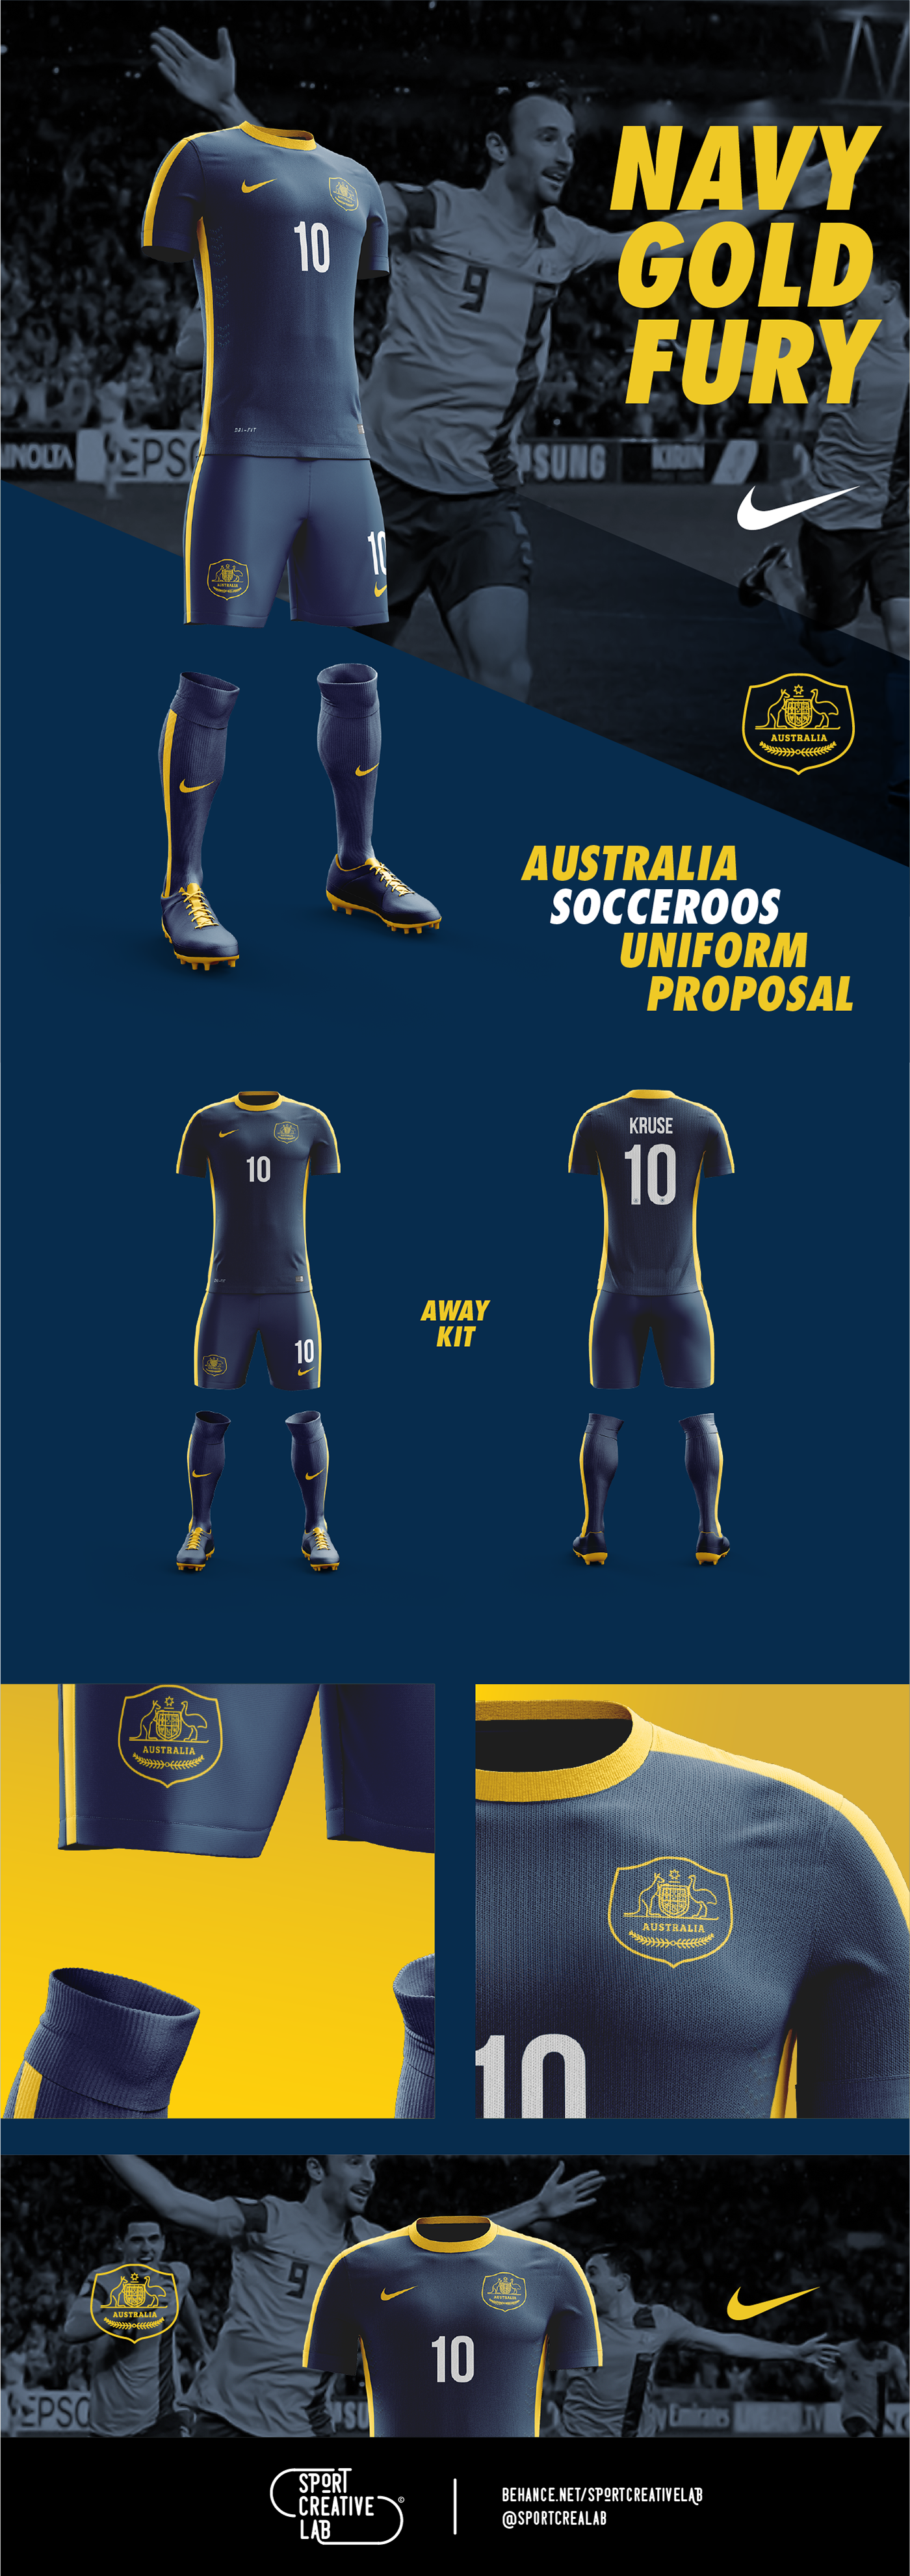 Playing uniform proposal for the Australian National